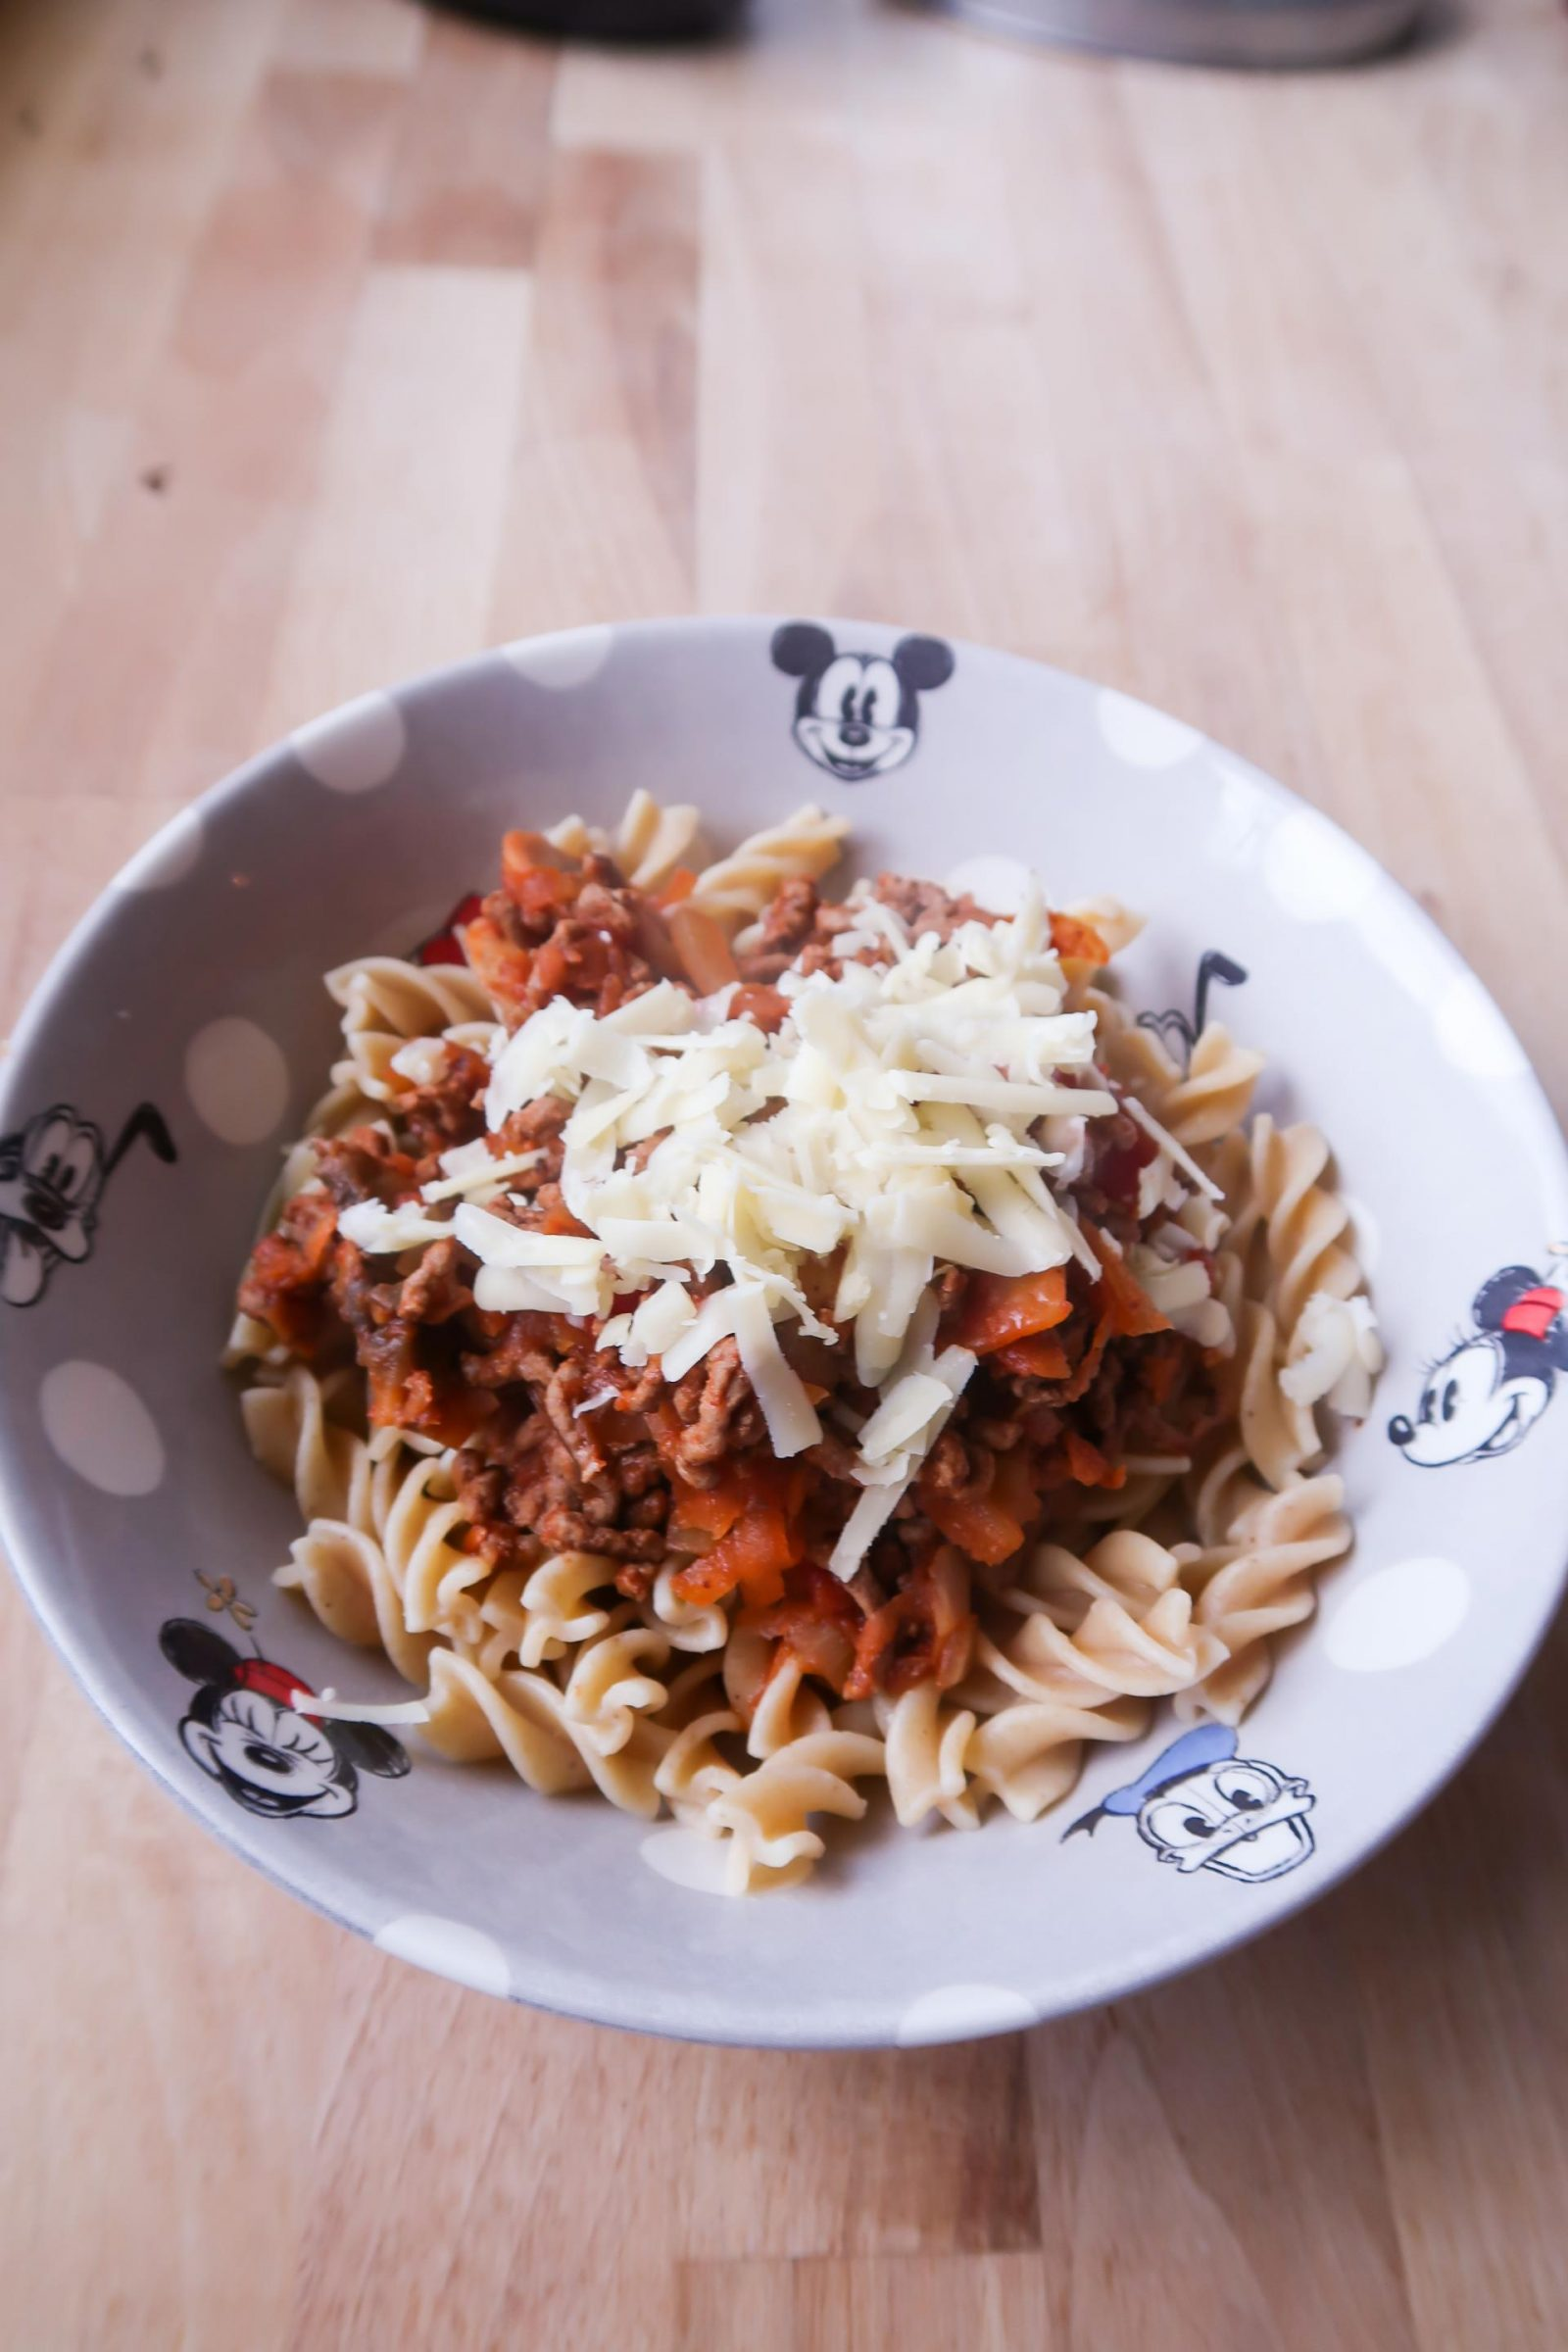 qucik and easy bolognese recipe served with pasta